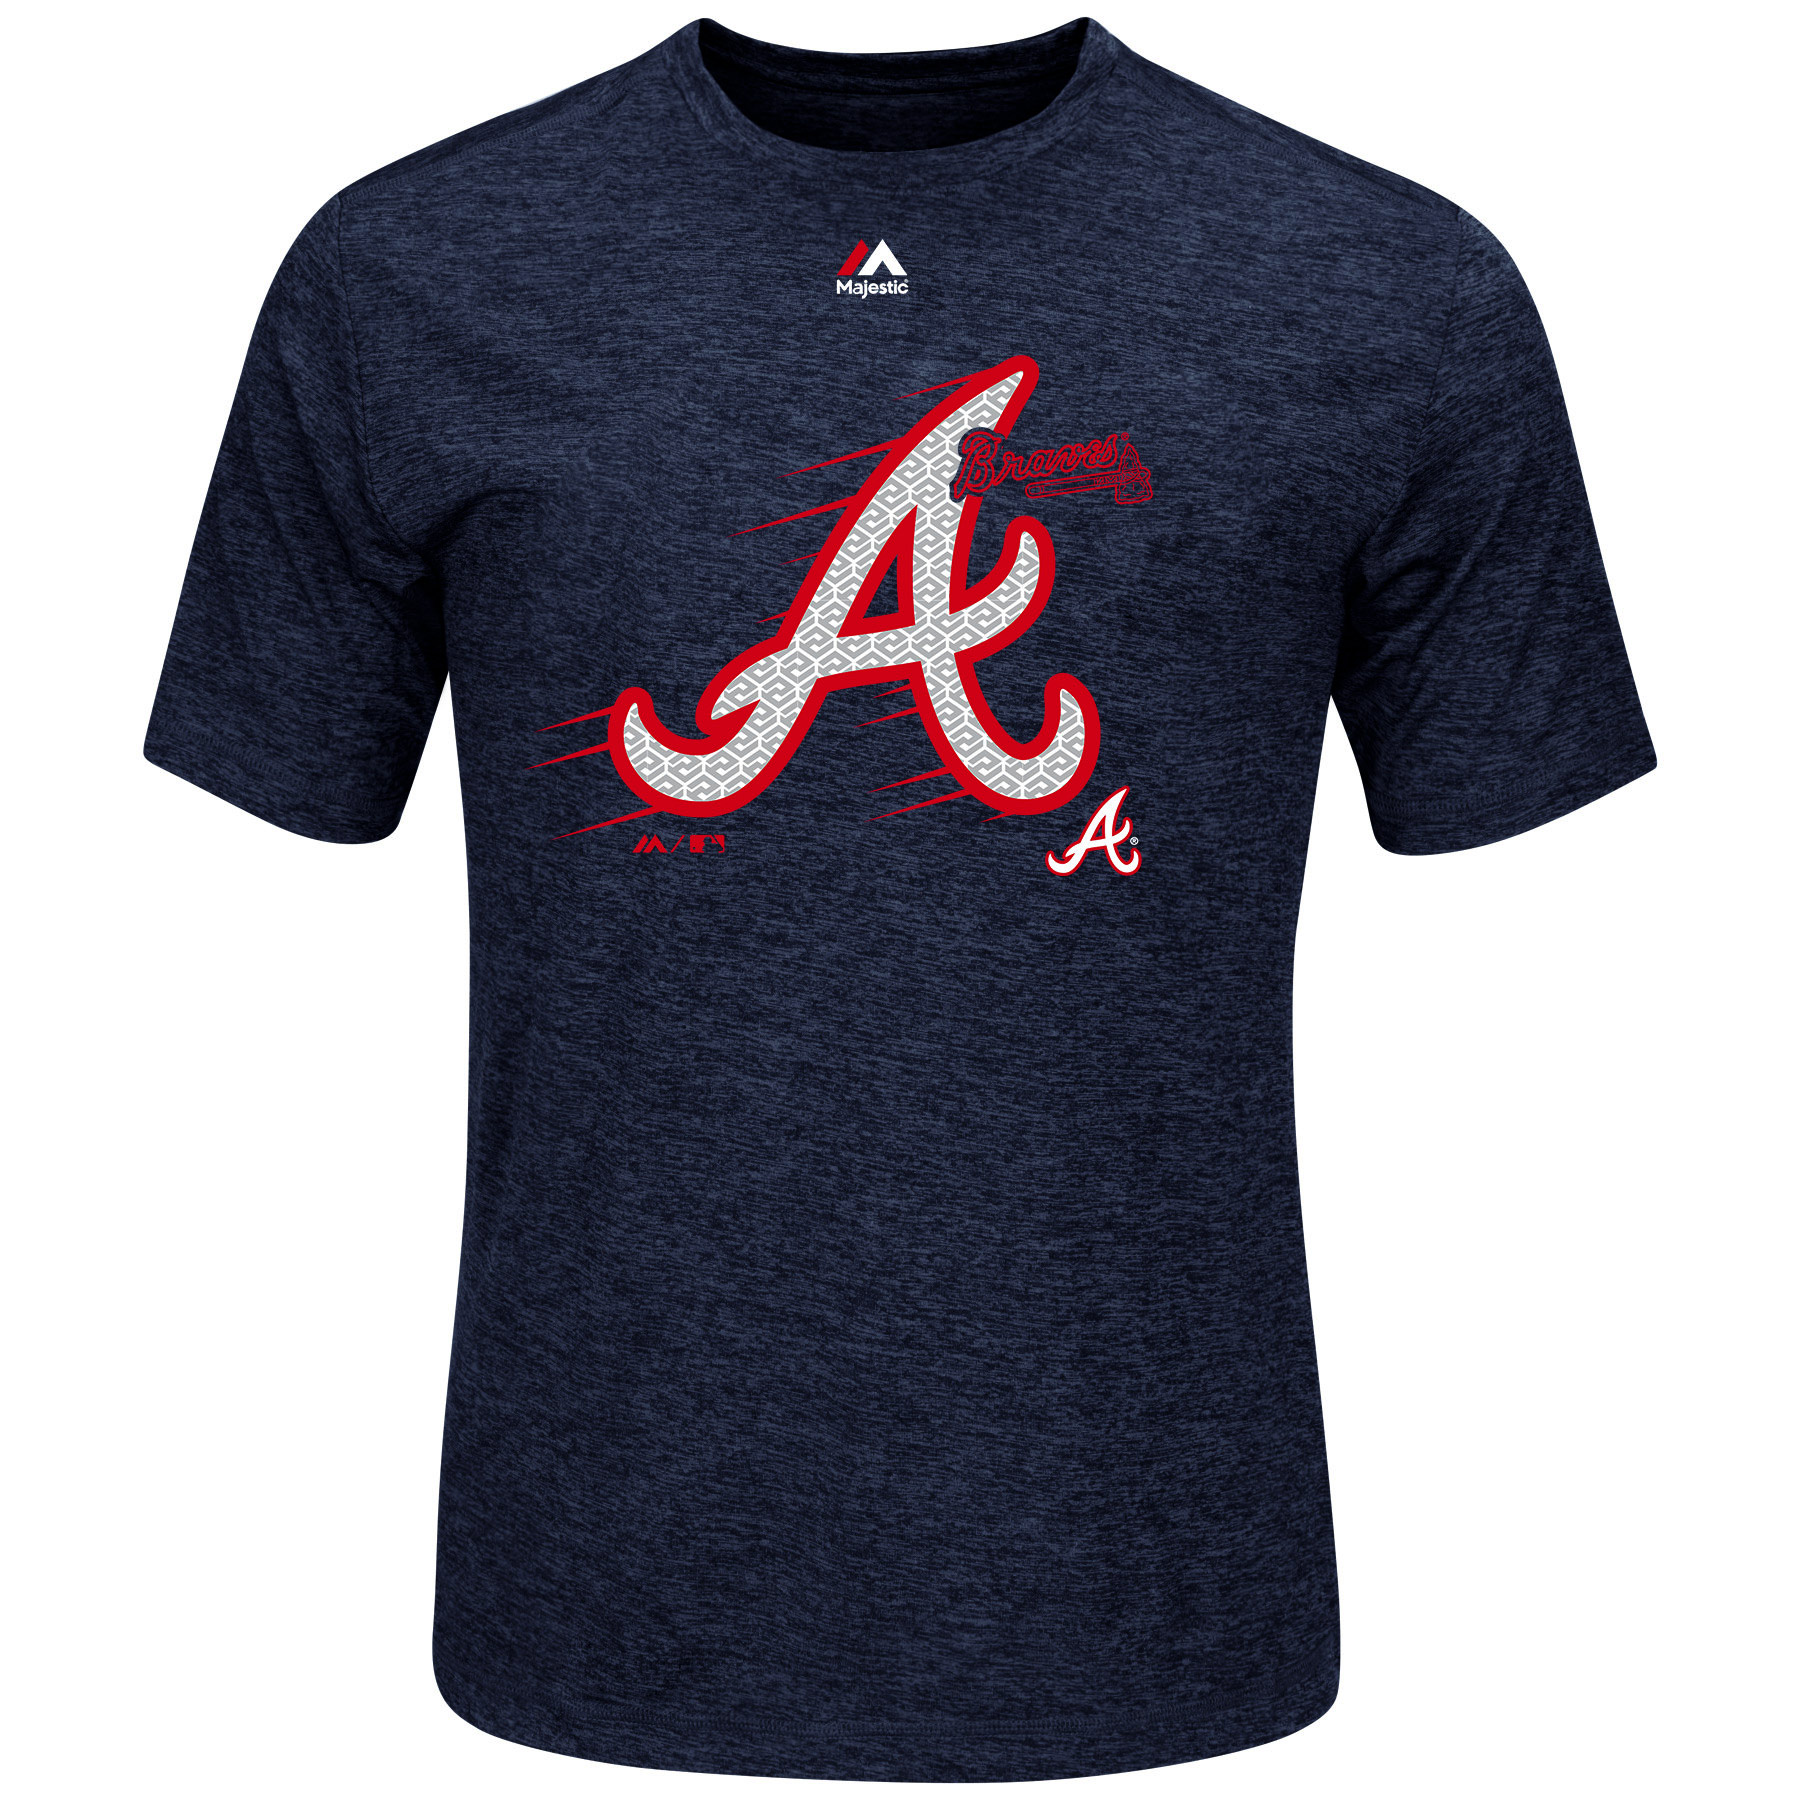 "Atlanta Braves Majestic MLB ""Far Beyond"" Cool Base Heathered Men's T-Shirt by MAJESTIC LSG"